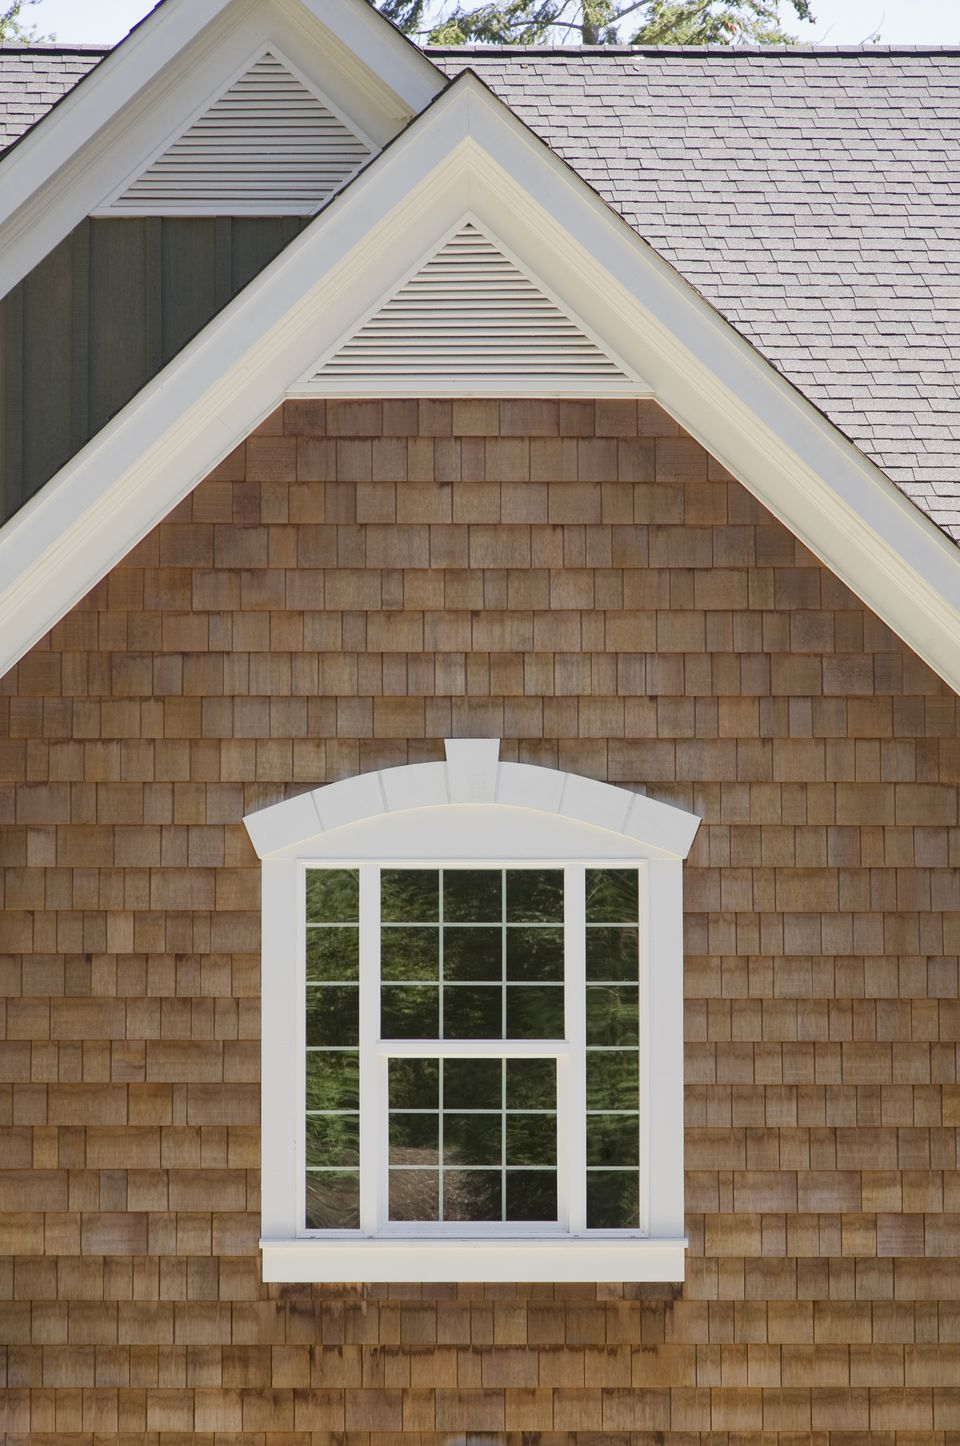 House siding options from plywood to vinyl for Types of house siding materials